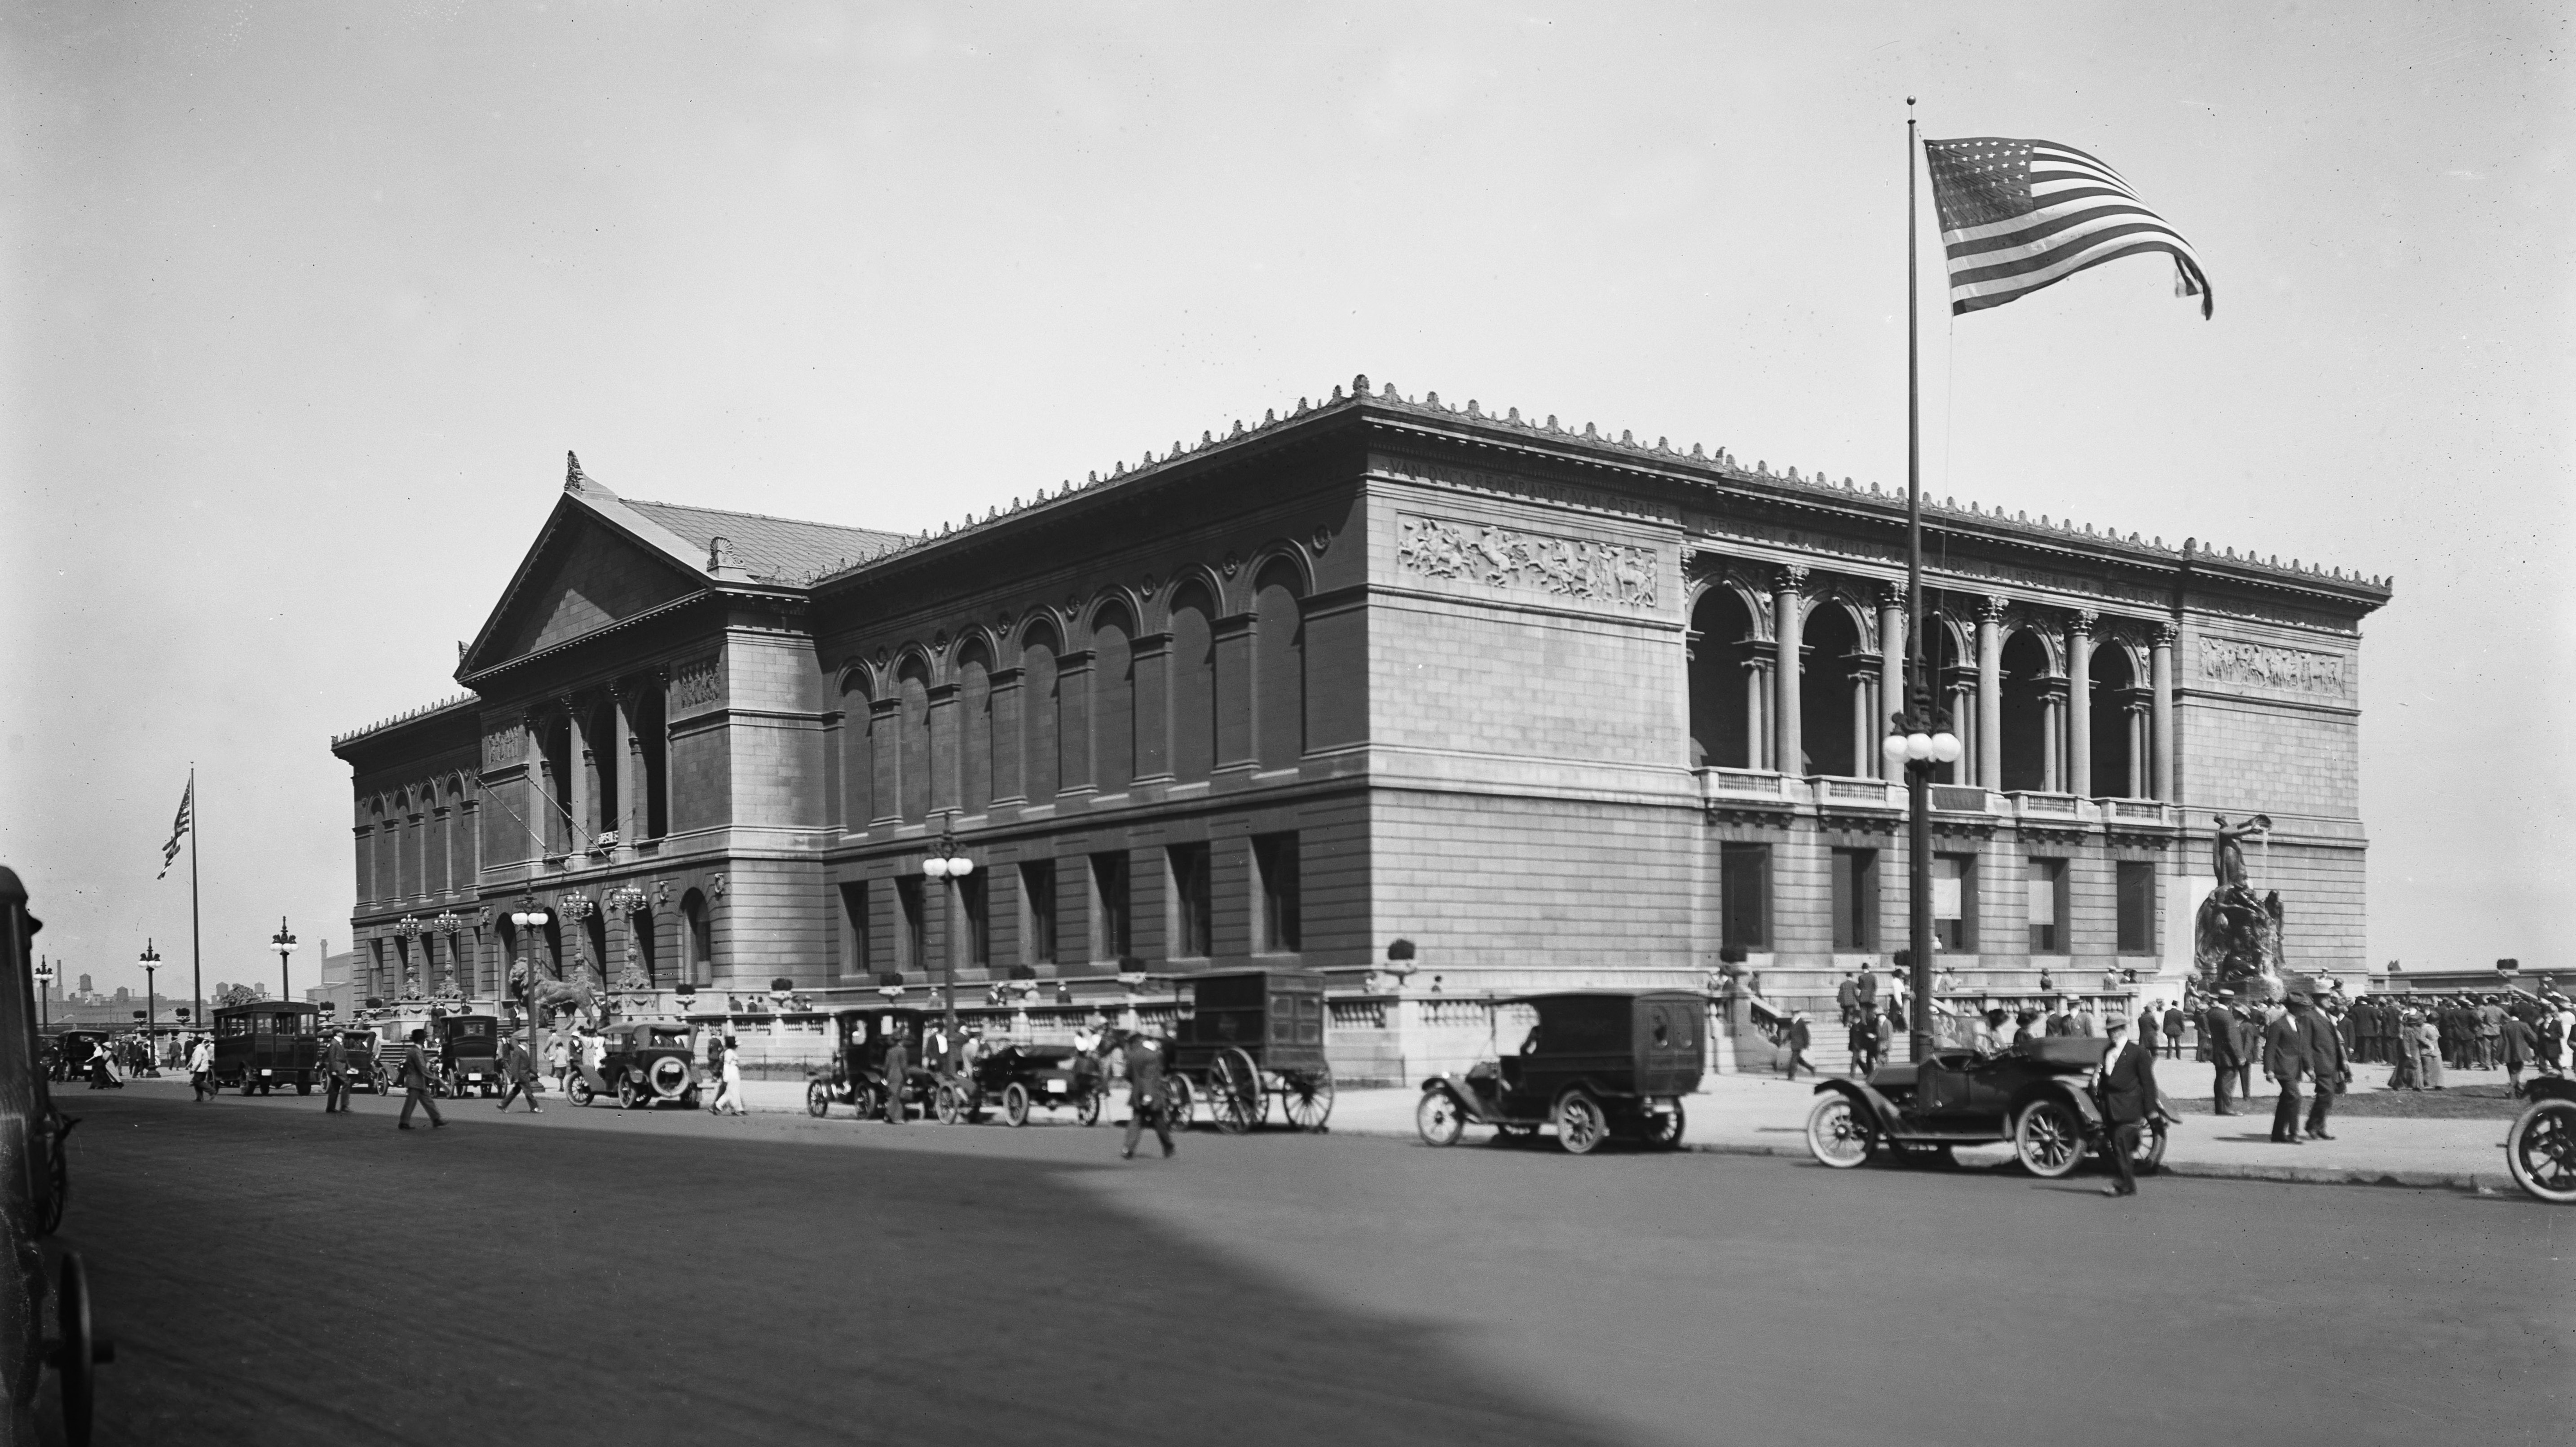 Archival image of the Art Institute of Chicago